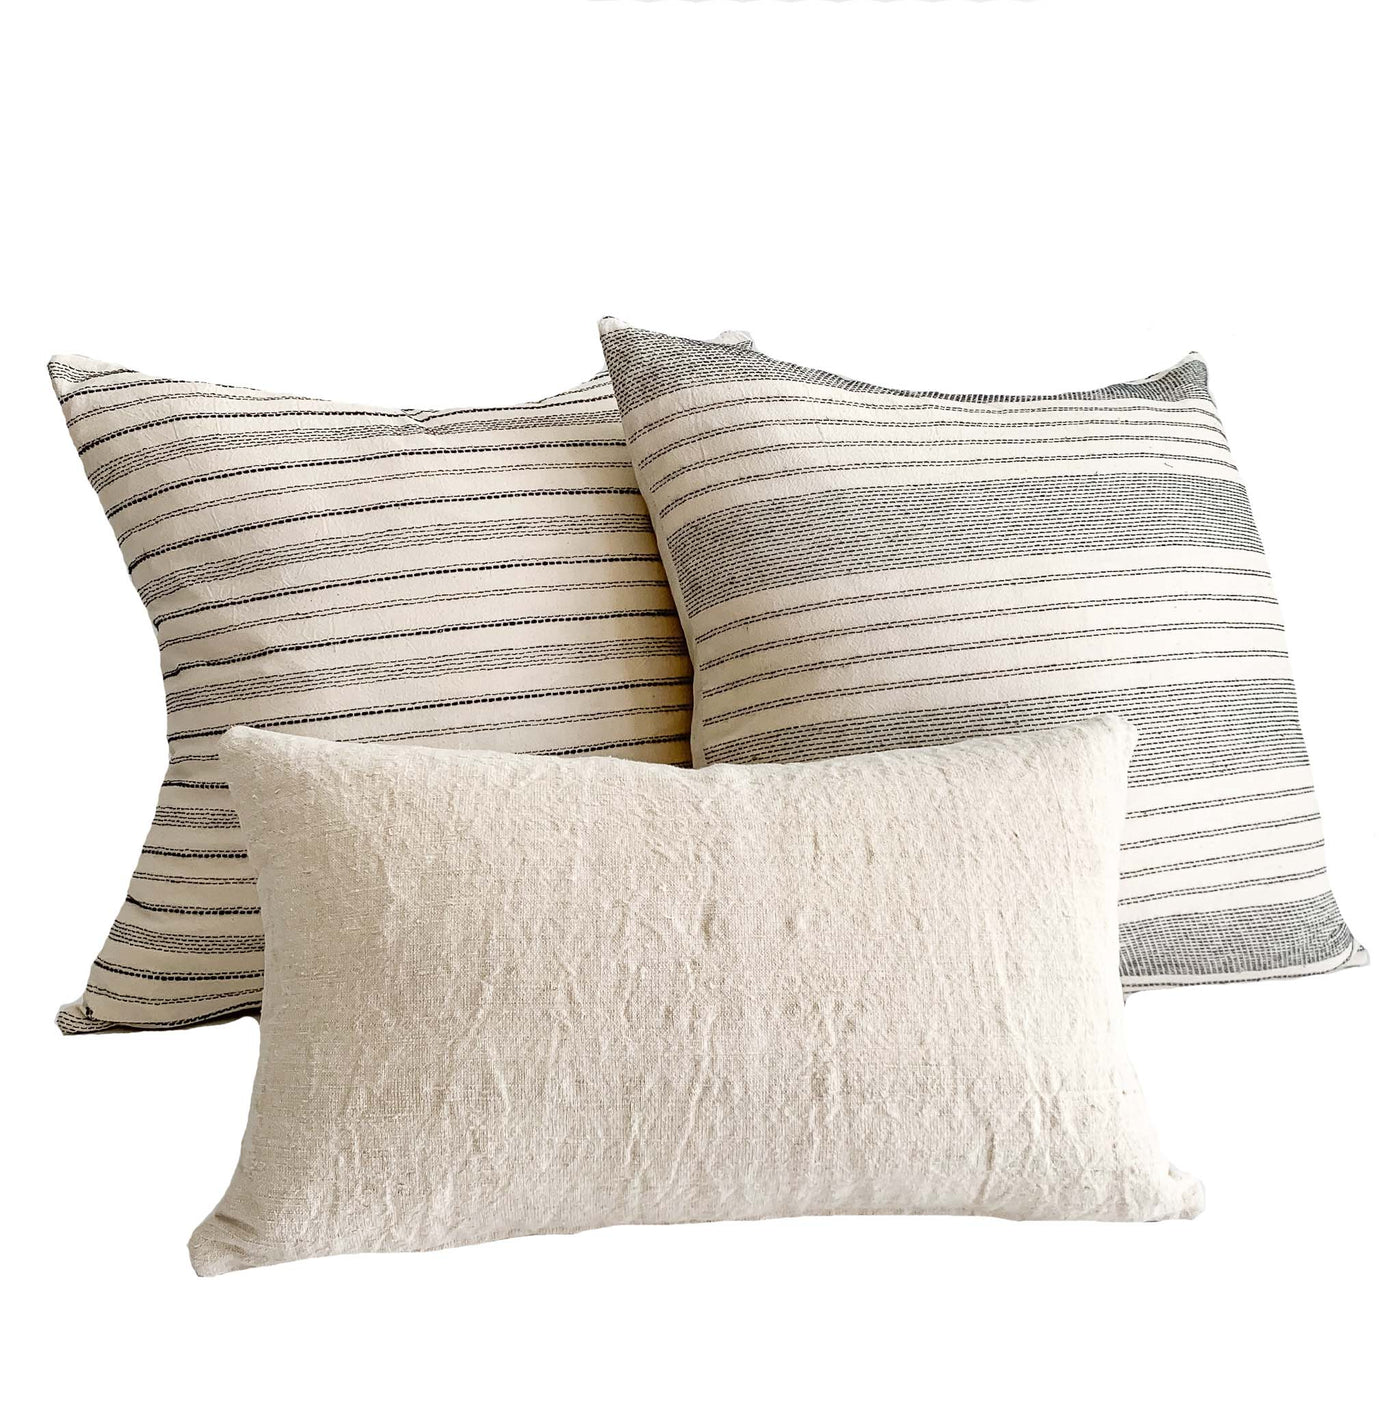 Studio Pillows | Pillow Combination #7 | Antique French Linen & Vintage Pillows - Studio Pillows